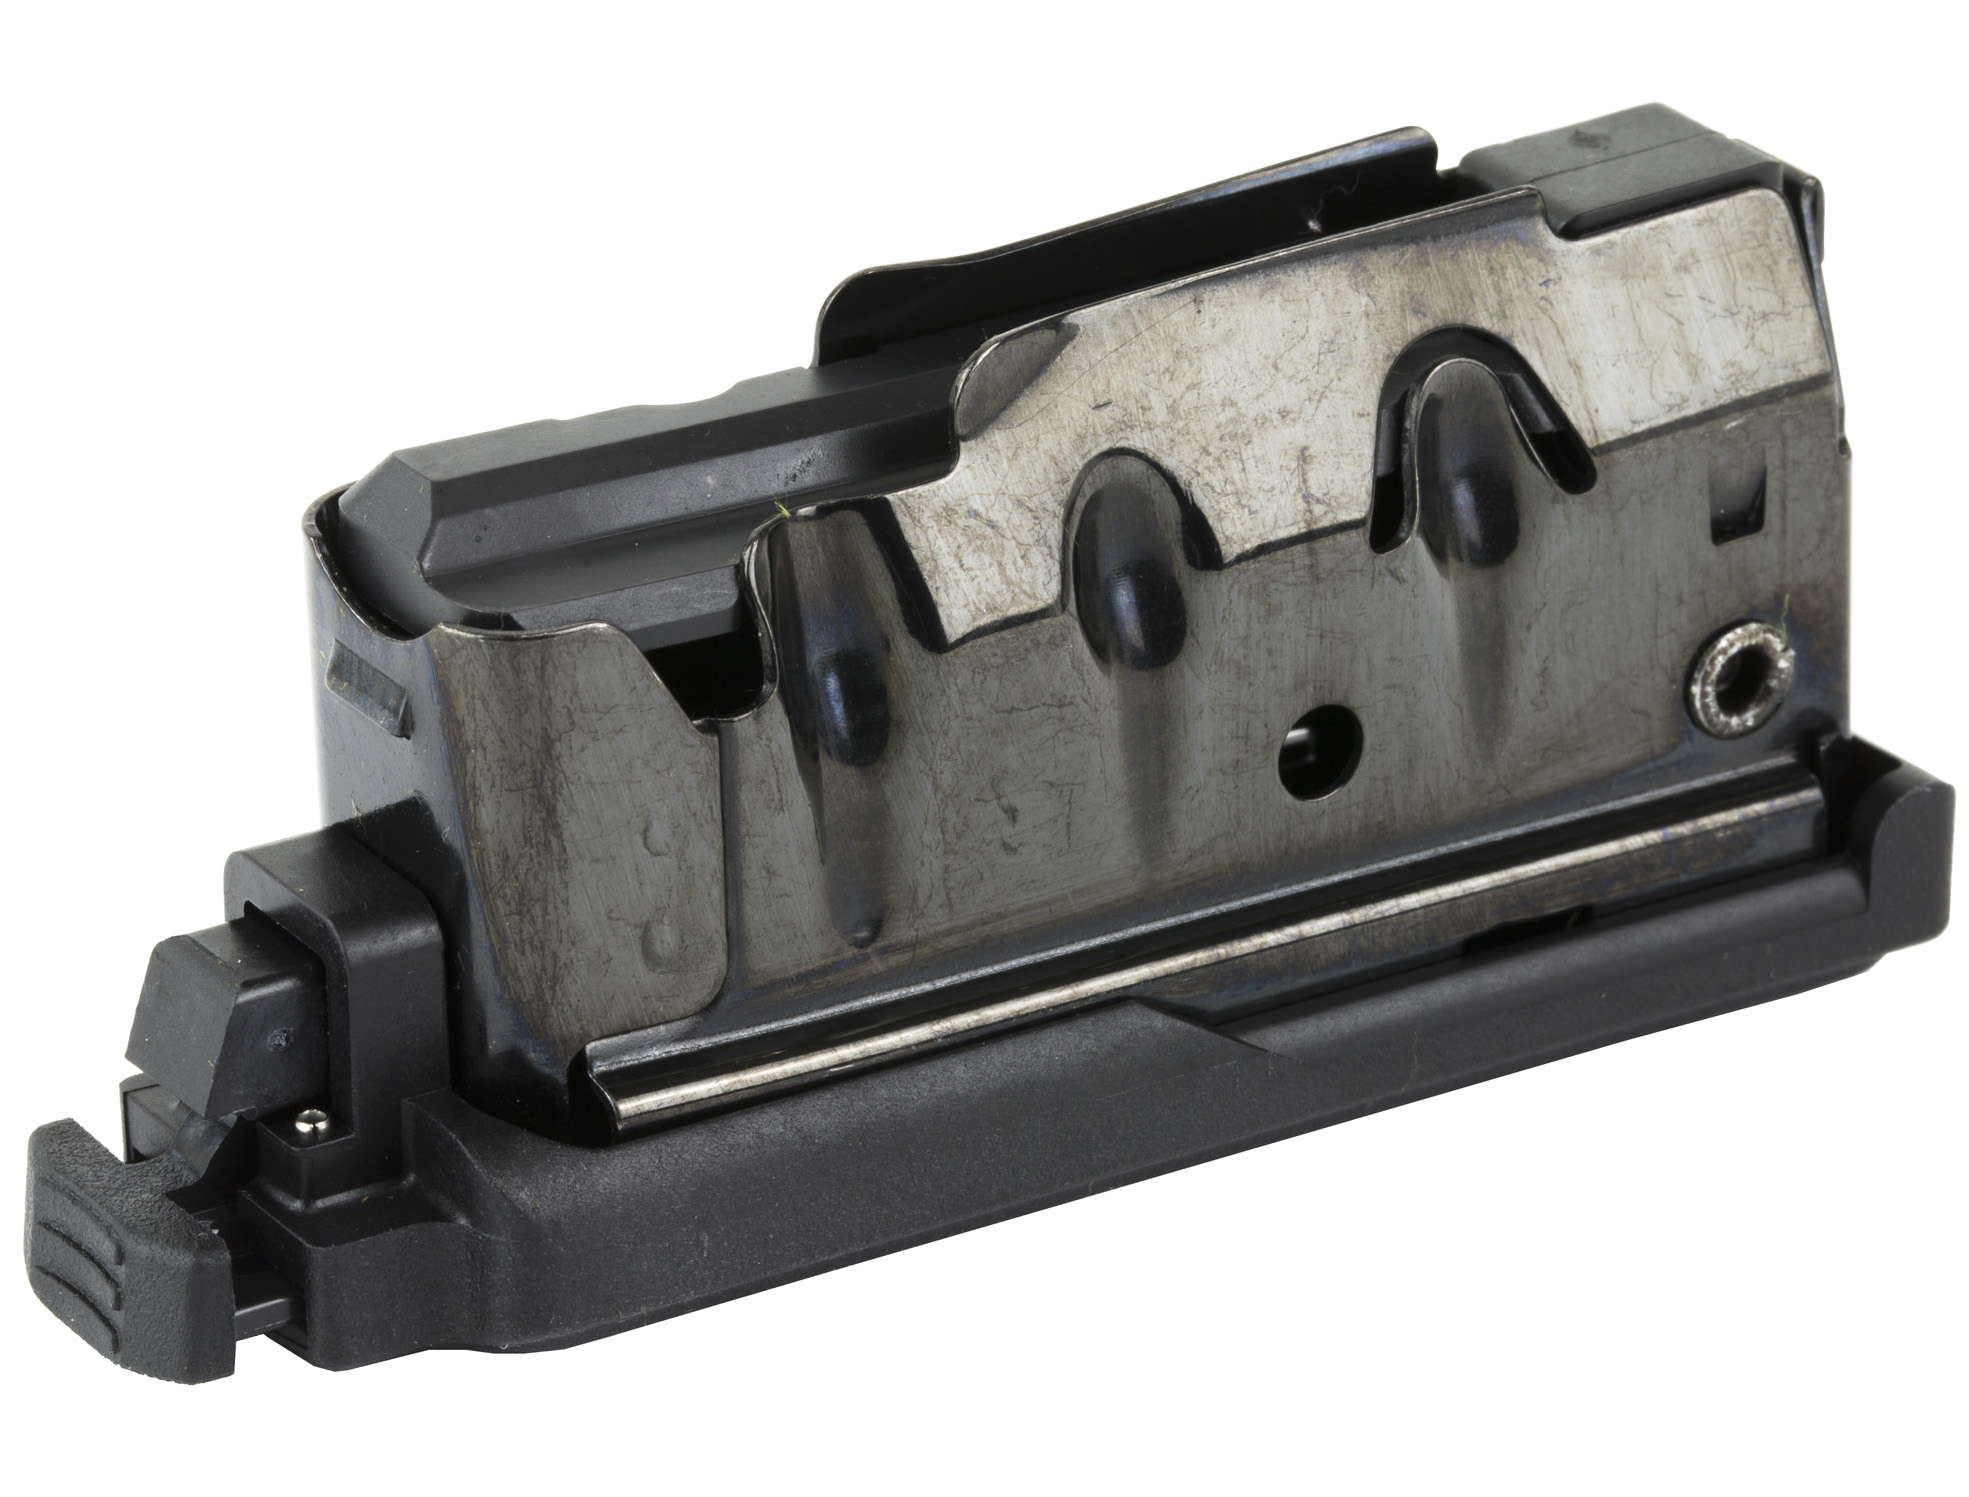 Details about Savage Arms Magazine For Axis Series  223 Remington-4 Round  Rifle Mag-55230